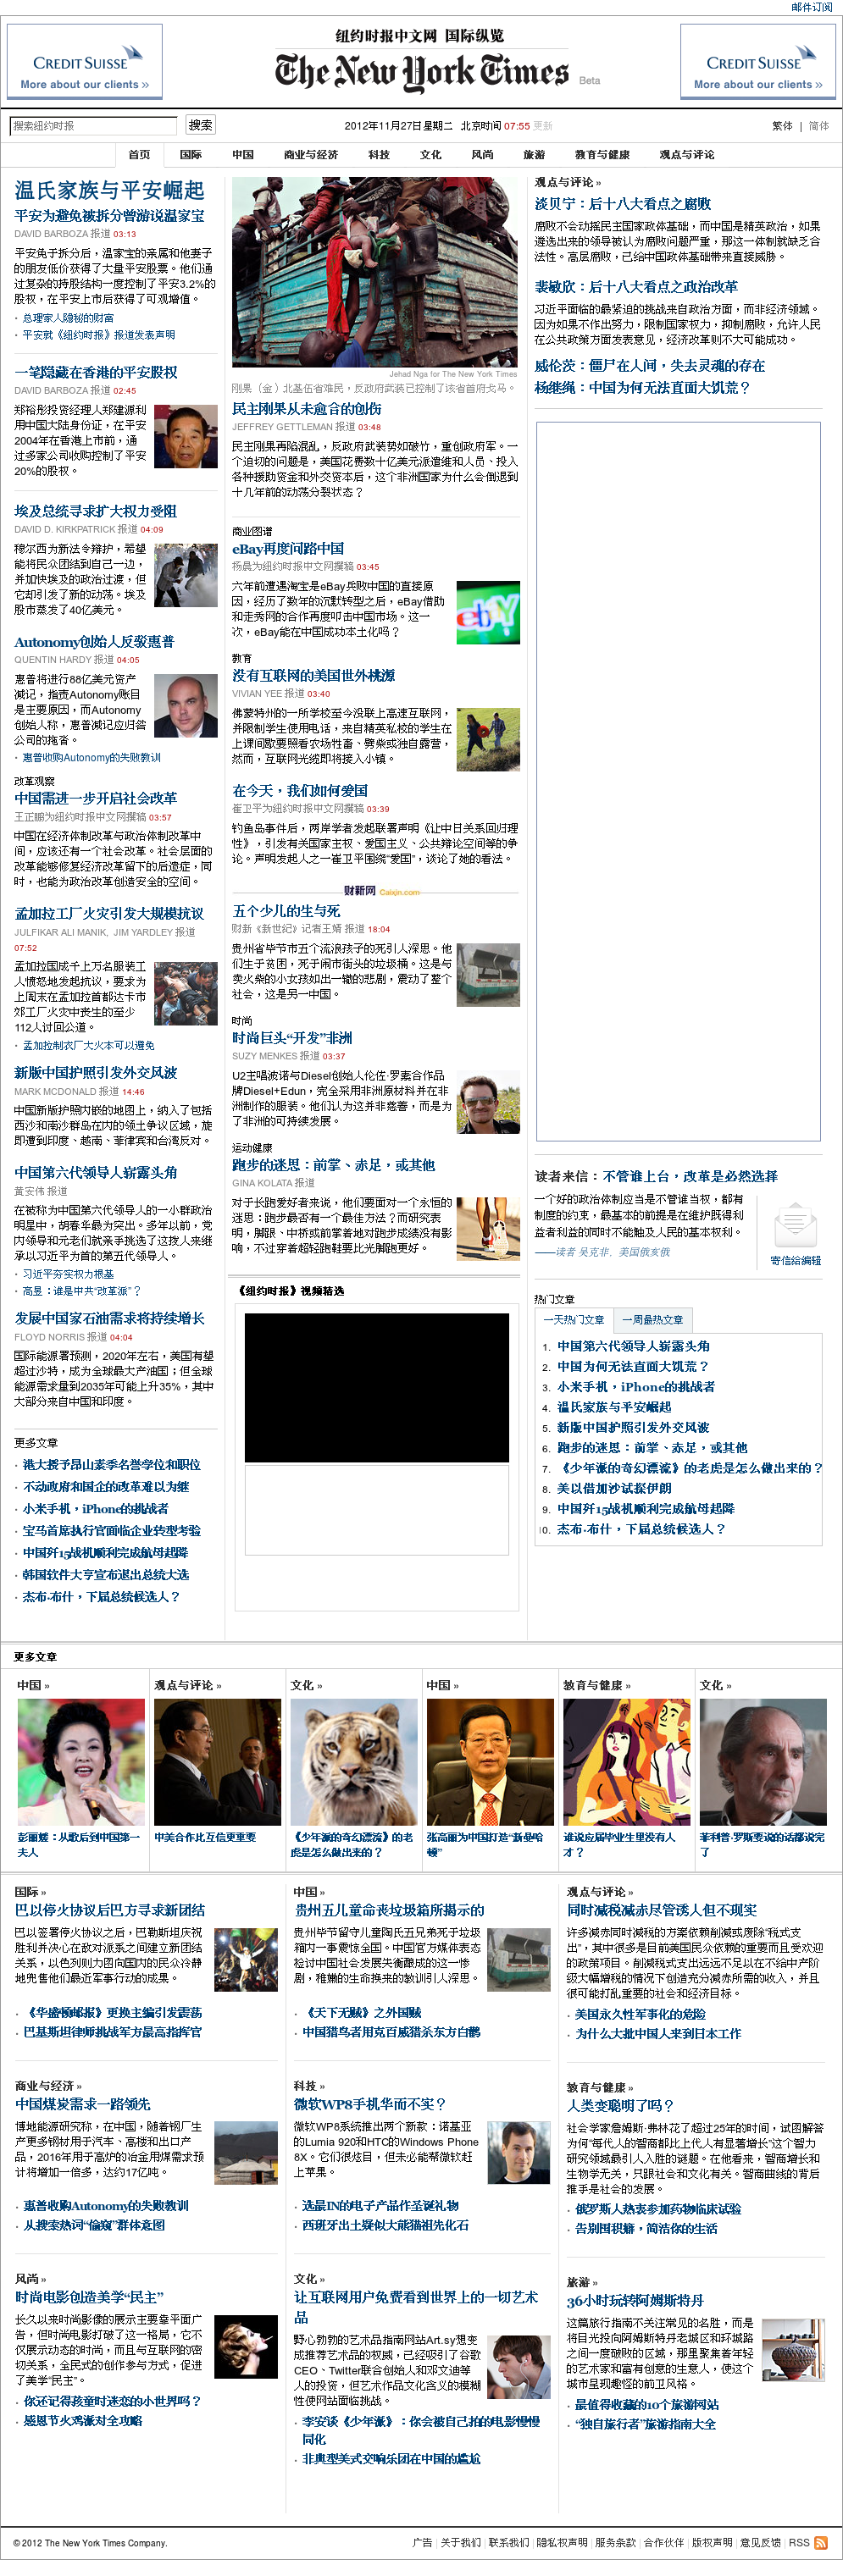 The New York Times (Chinese) at Tuesday Nov. 27, 2012, 2:23 a.m. UTC